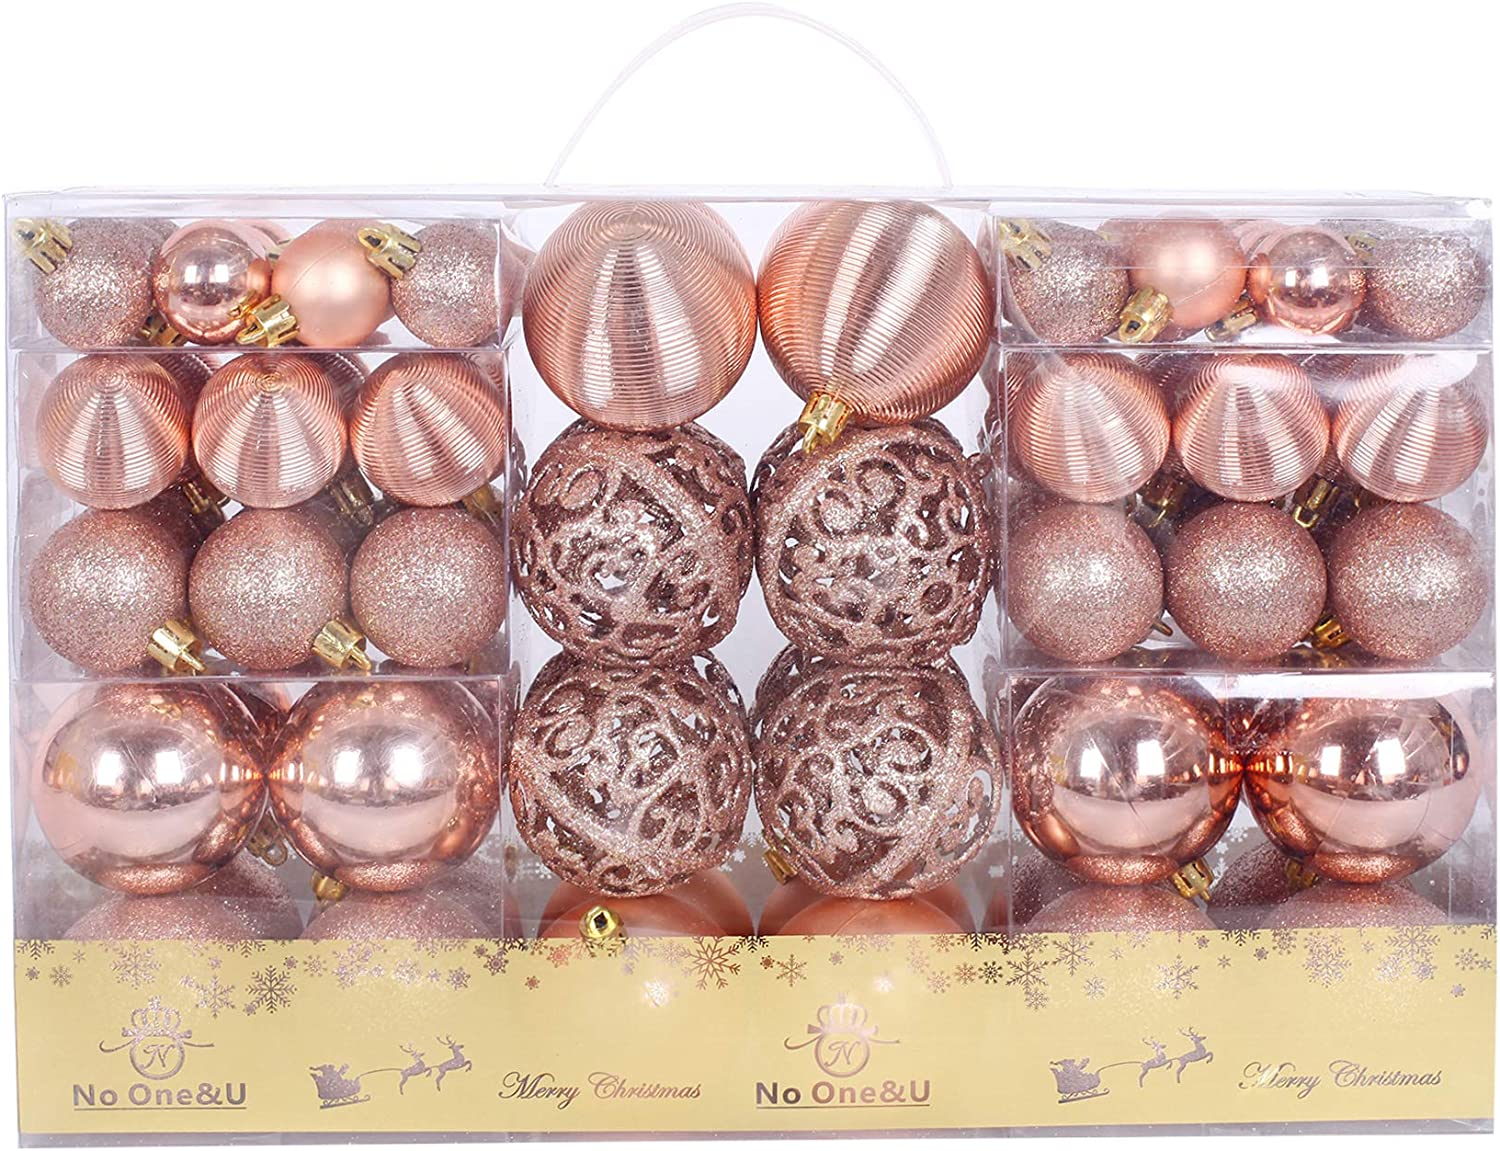 No One&U Christmas Balls Ornaments 100pcs Shatterproof for Decorating Christmas Tree,Christmas Tree Hanging Balls with Reusable Hand-held Gift Package for Holiday Xmas Tree Decorations. (Rose Gold)